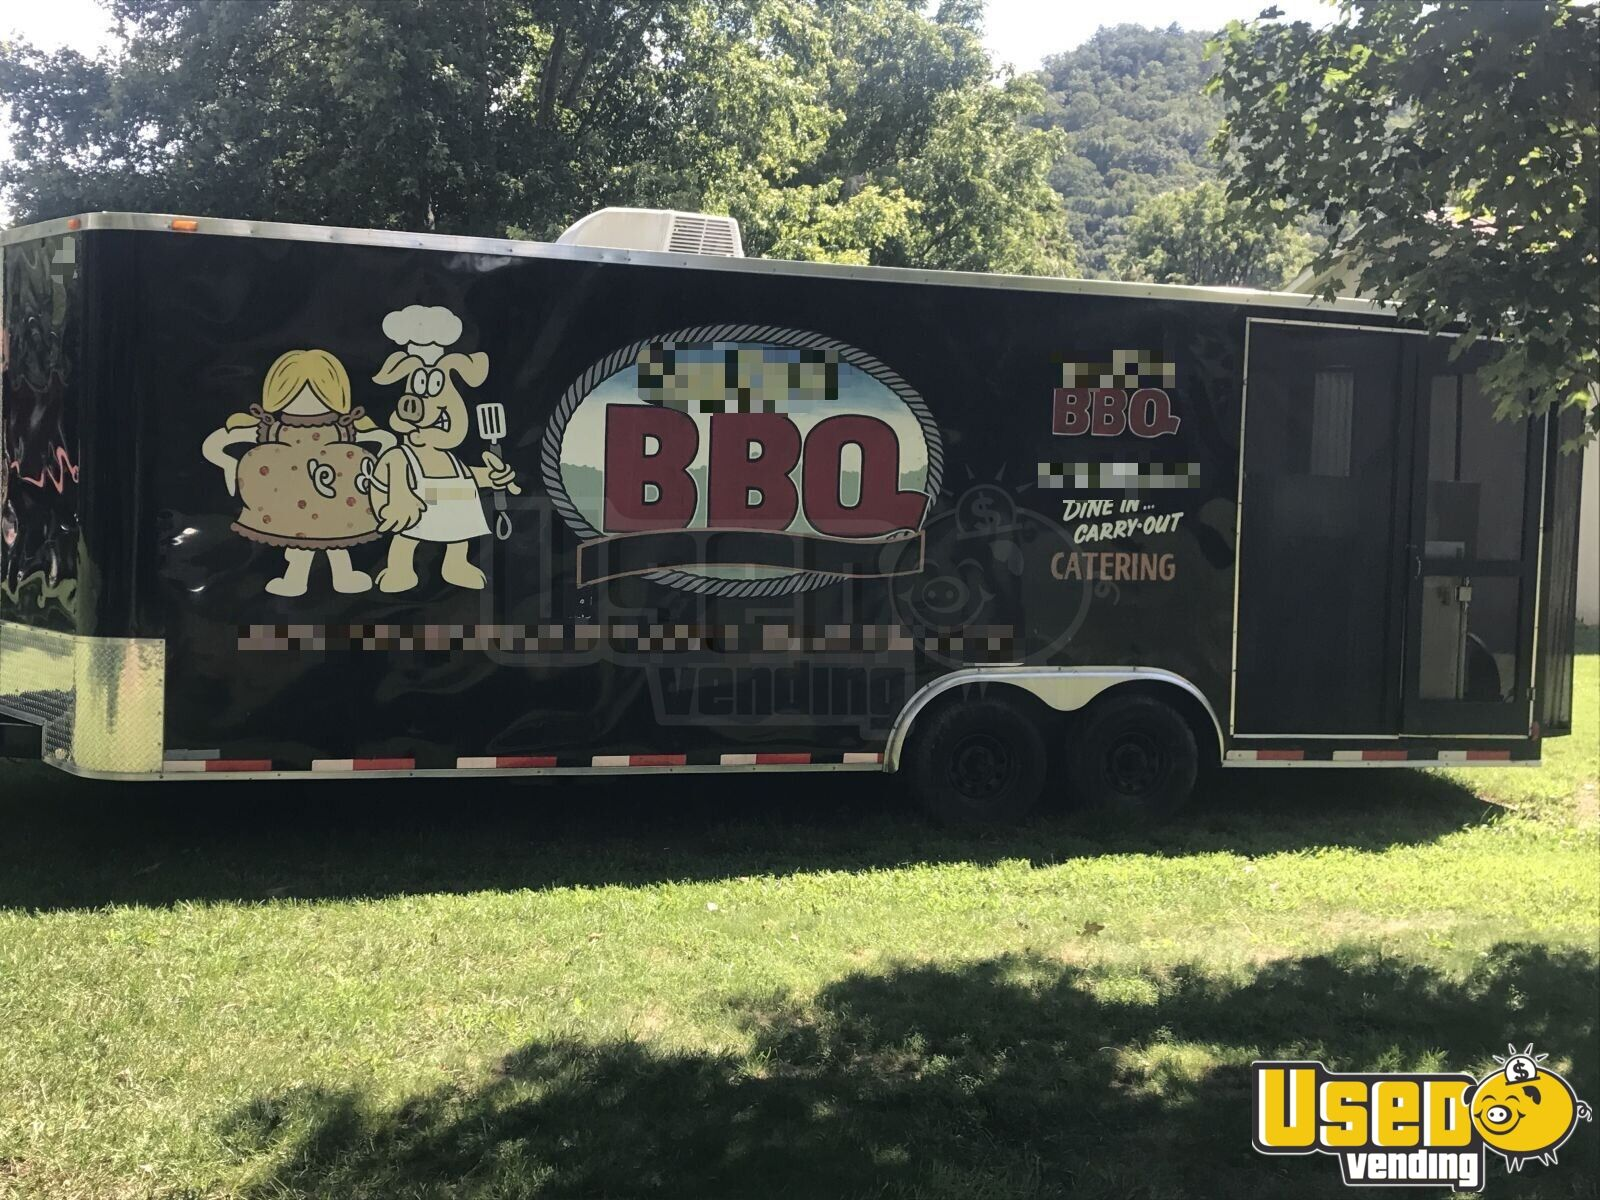 2013 Colonial Custom Built Barbecue Food Trailer Air Conditioning North Carolina for Sale - 2